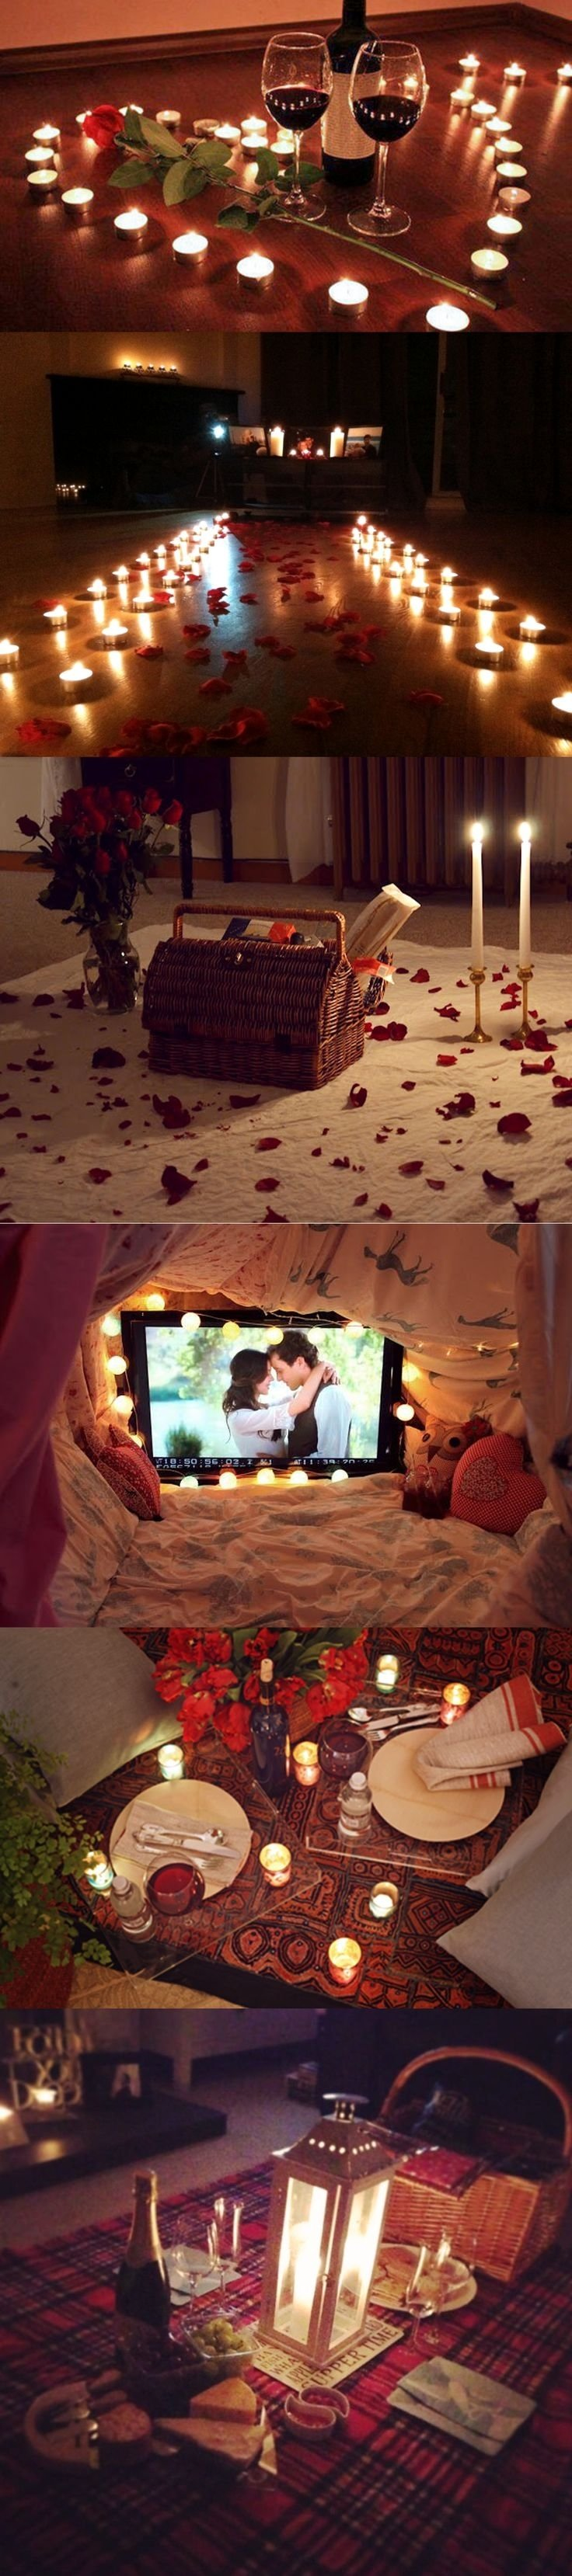 10 Trendy Romantic Ideas For My Wife 31 best 3 images on pinterest romantic ideas valantine day and 1 2020